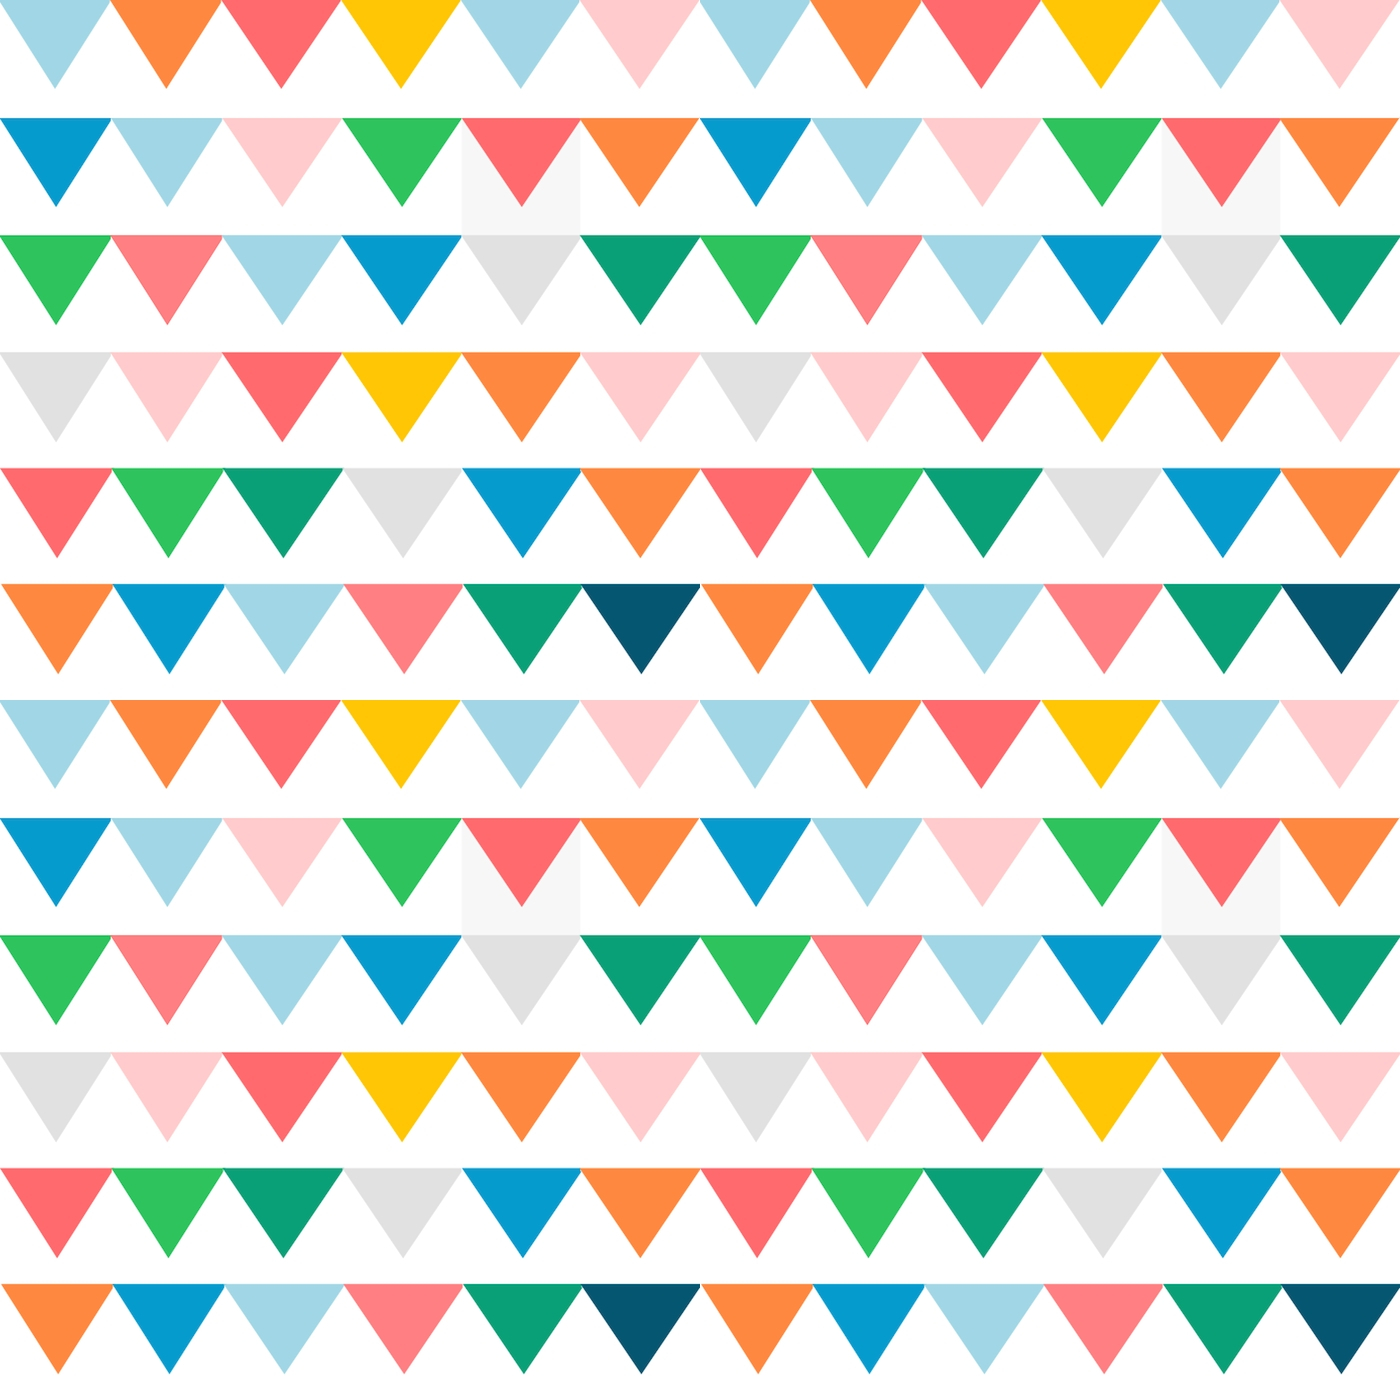 Free Printable Wrapping Paper Patterns | Writings And Essays Corner - Free Printable Wrapping Paper Patterns